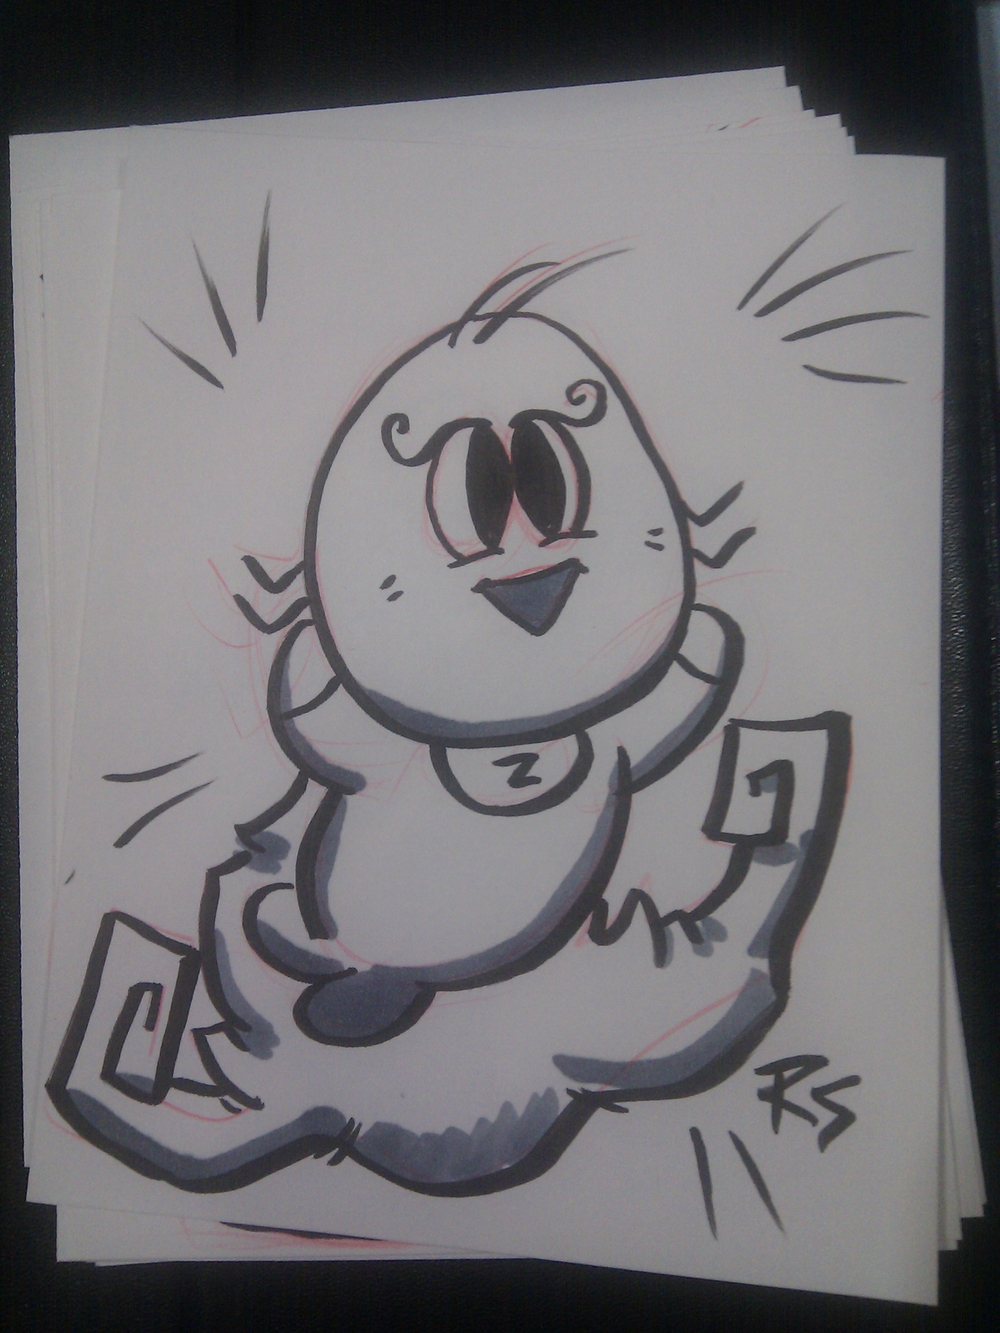 Sketchcards I made at Convergence #cvg2011 Artist Alley